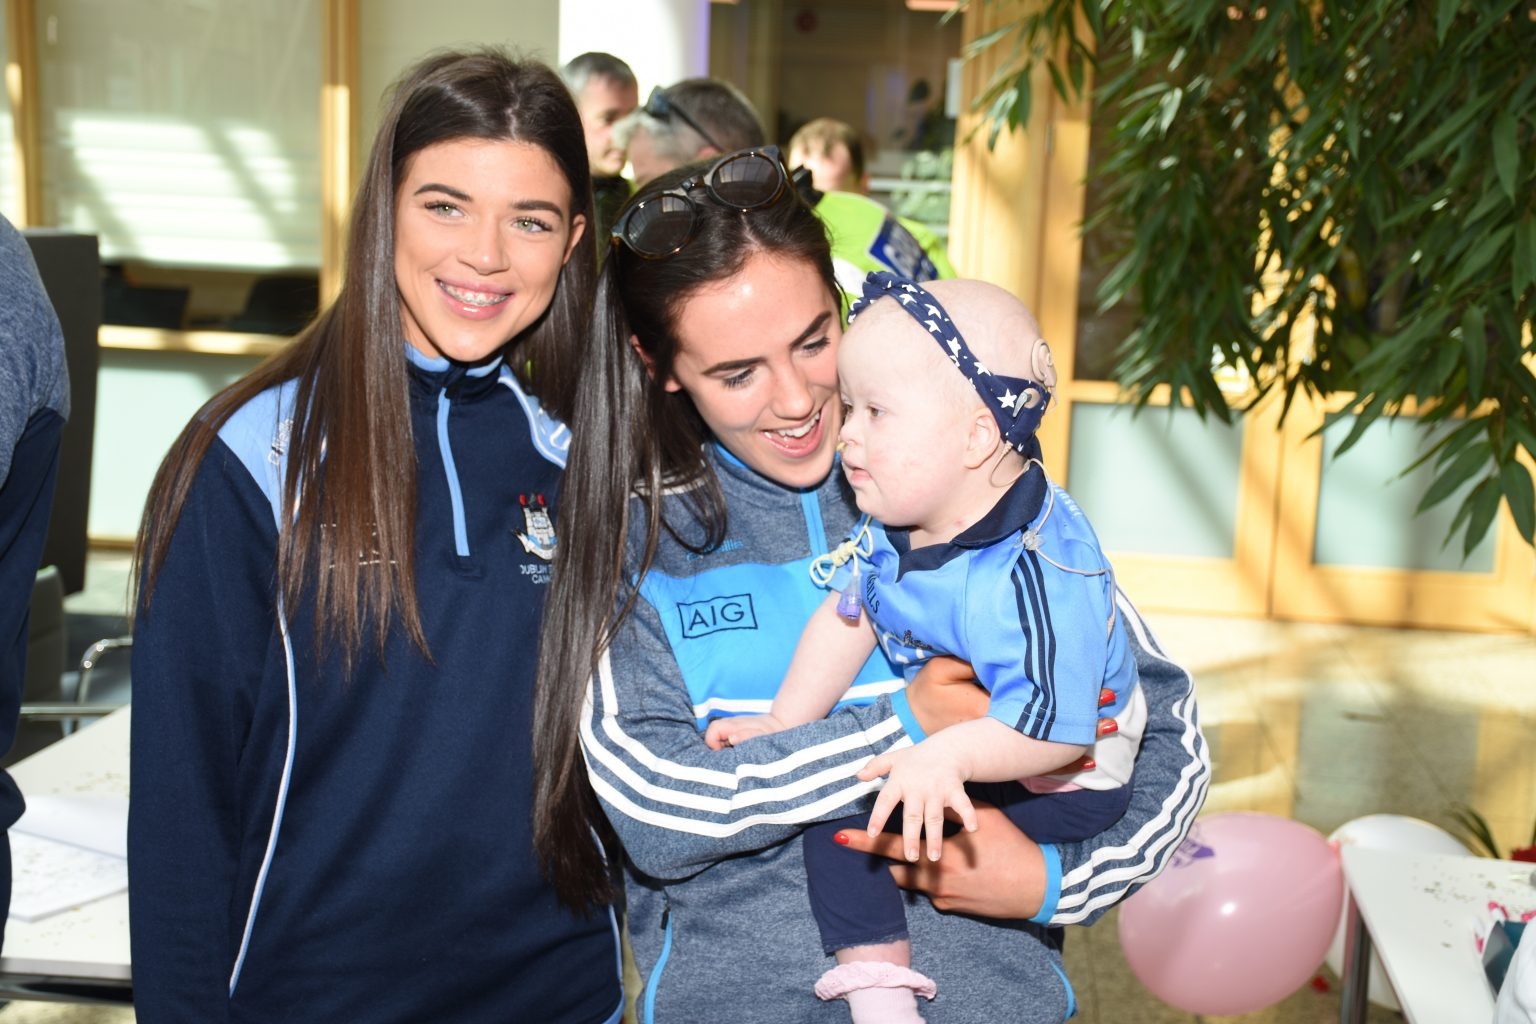 Dublin Players Hannah O'Neill and Emma O'Byrne holding a baby at the Aoibheann's Pink Tie Announcement In AIG Headquarters